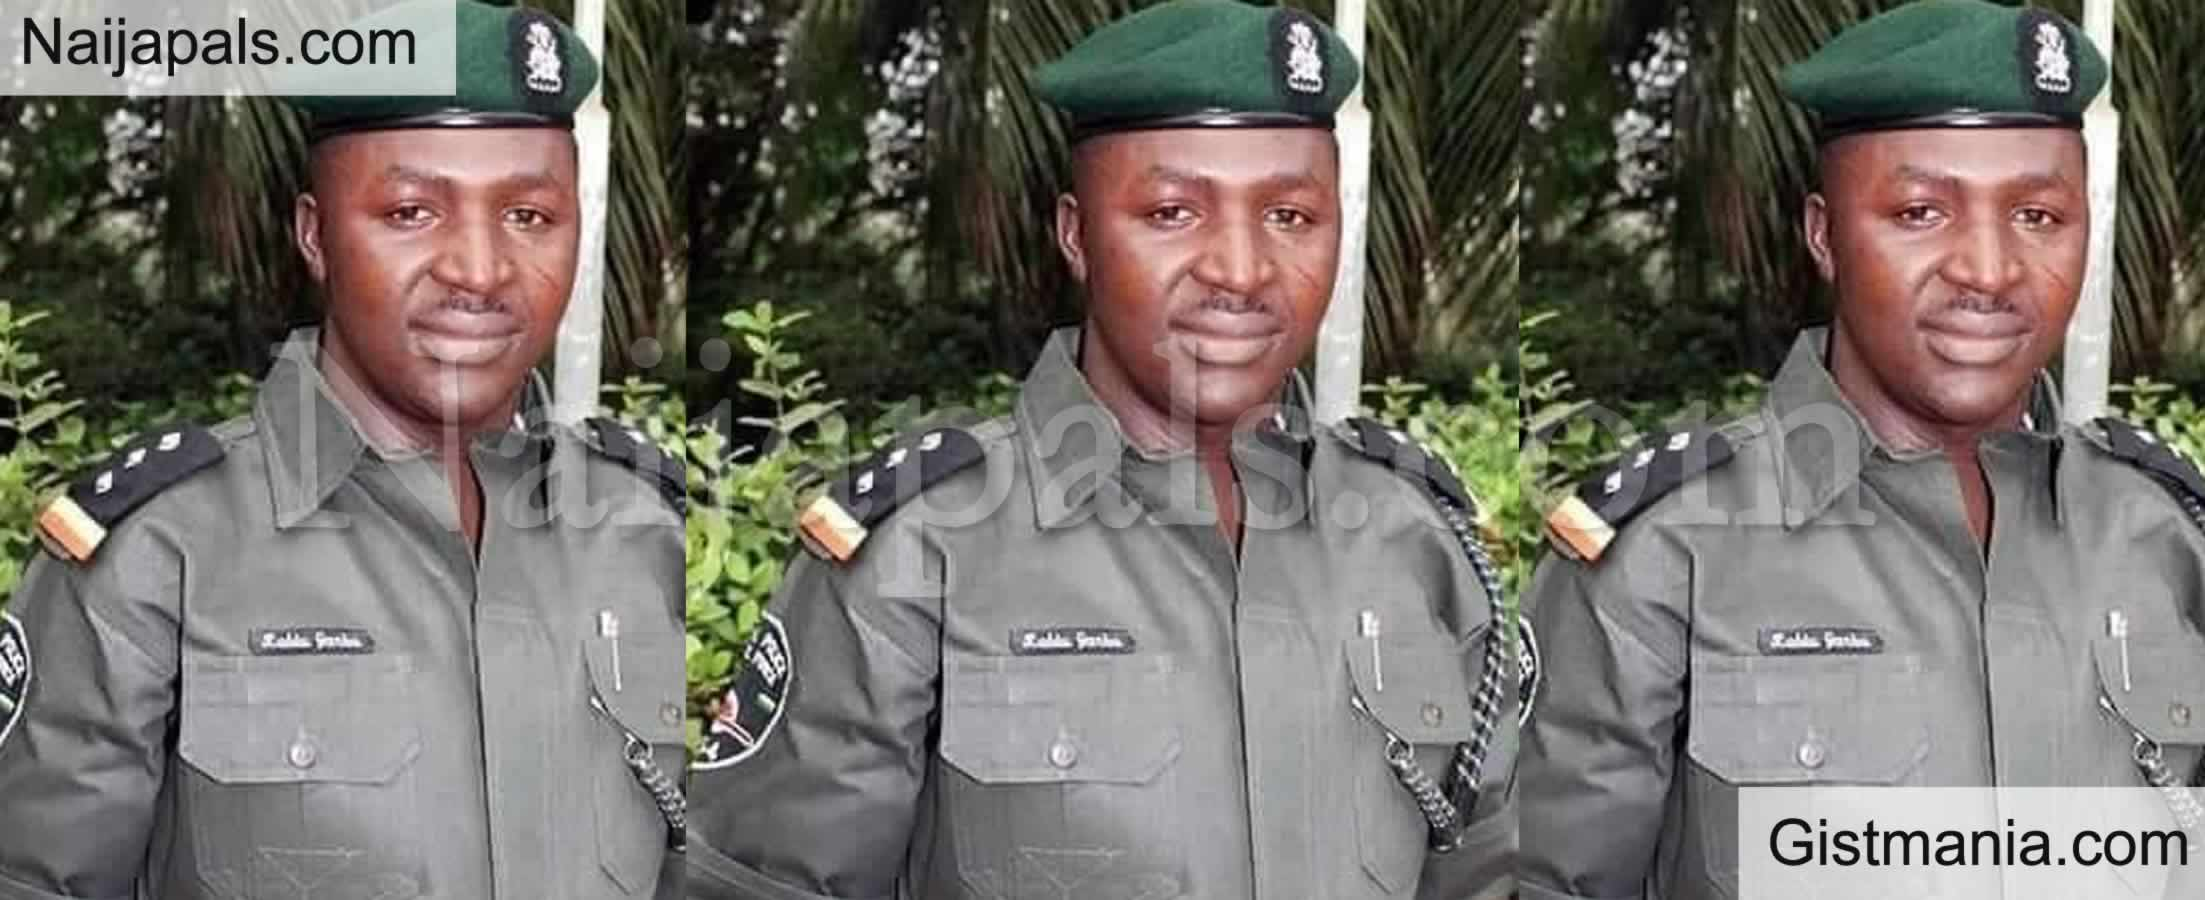 <img alt='.' class='lazyload' data-src='https://img.gistmania.com/emot/thumbs_up.gif' /> <b>I See Hope In The Greatness Of Nigeria - The Touching Story Of Stand Out Officer DSP Garba</b>